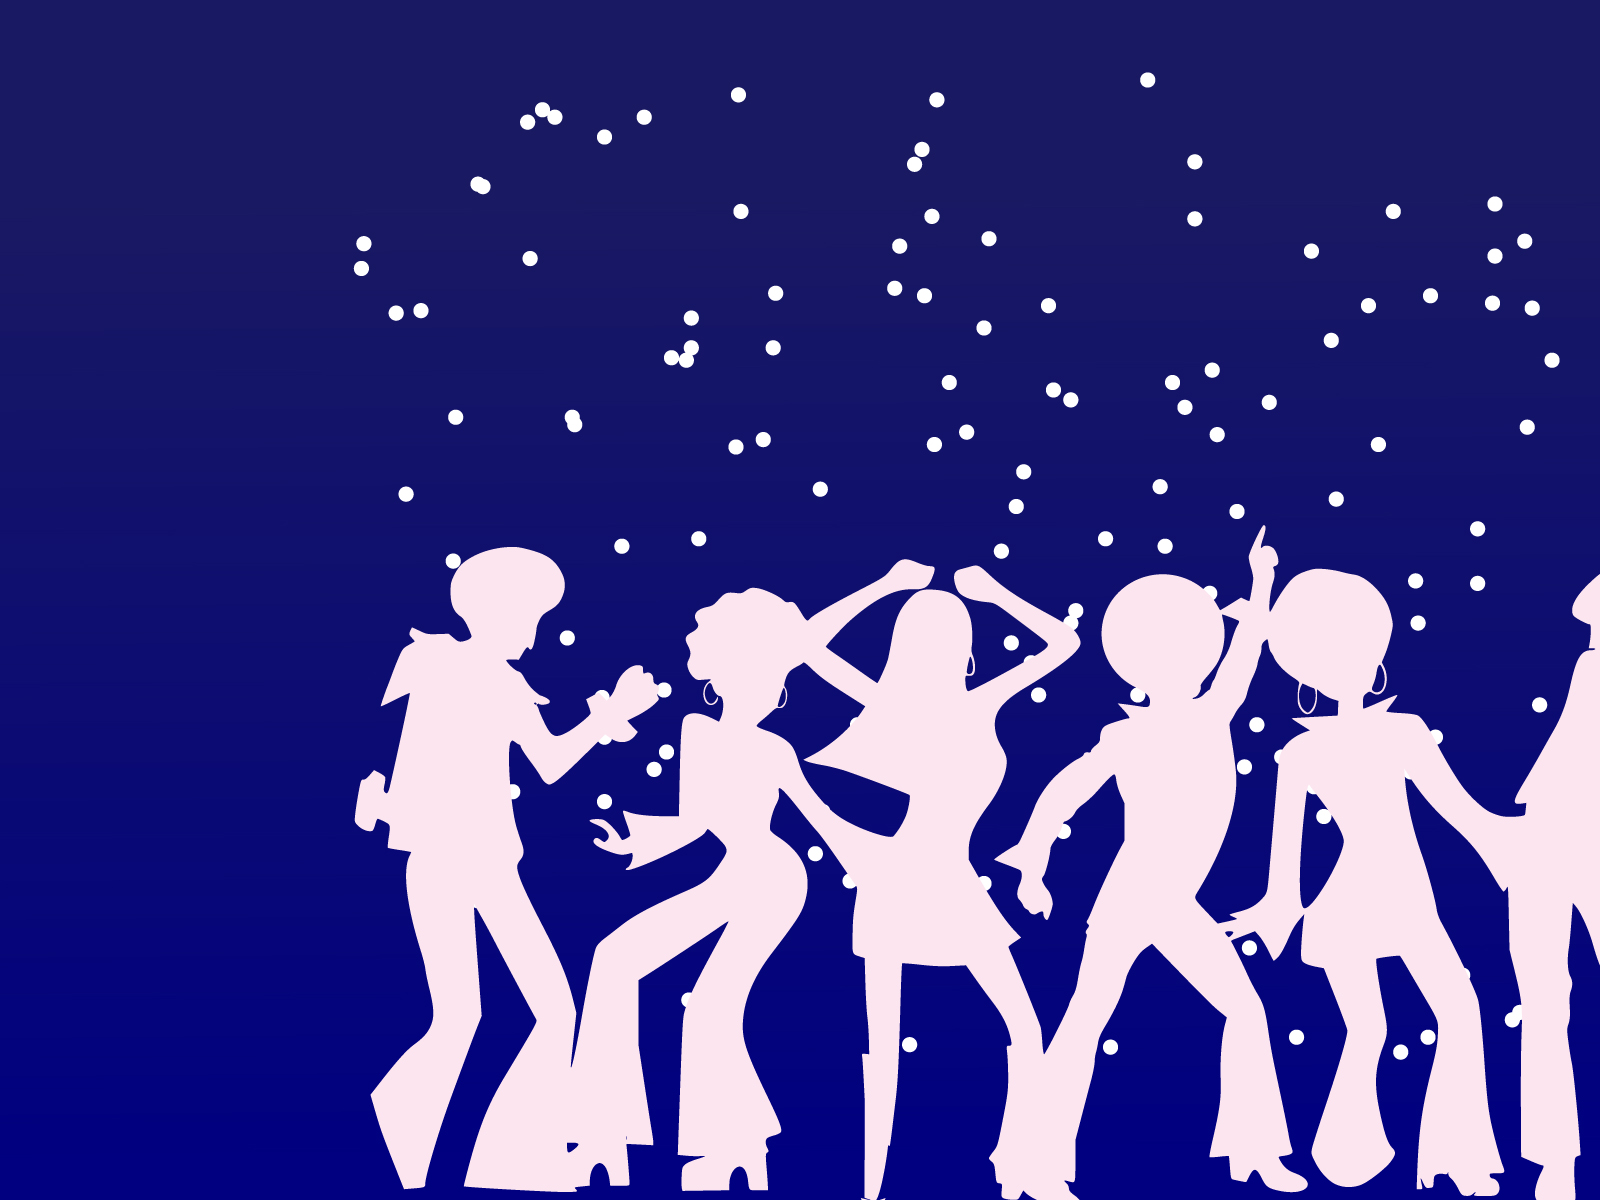 Disco dancers for party ppt backgrounds holiday music templates download background toneelgroepblik Gallery